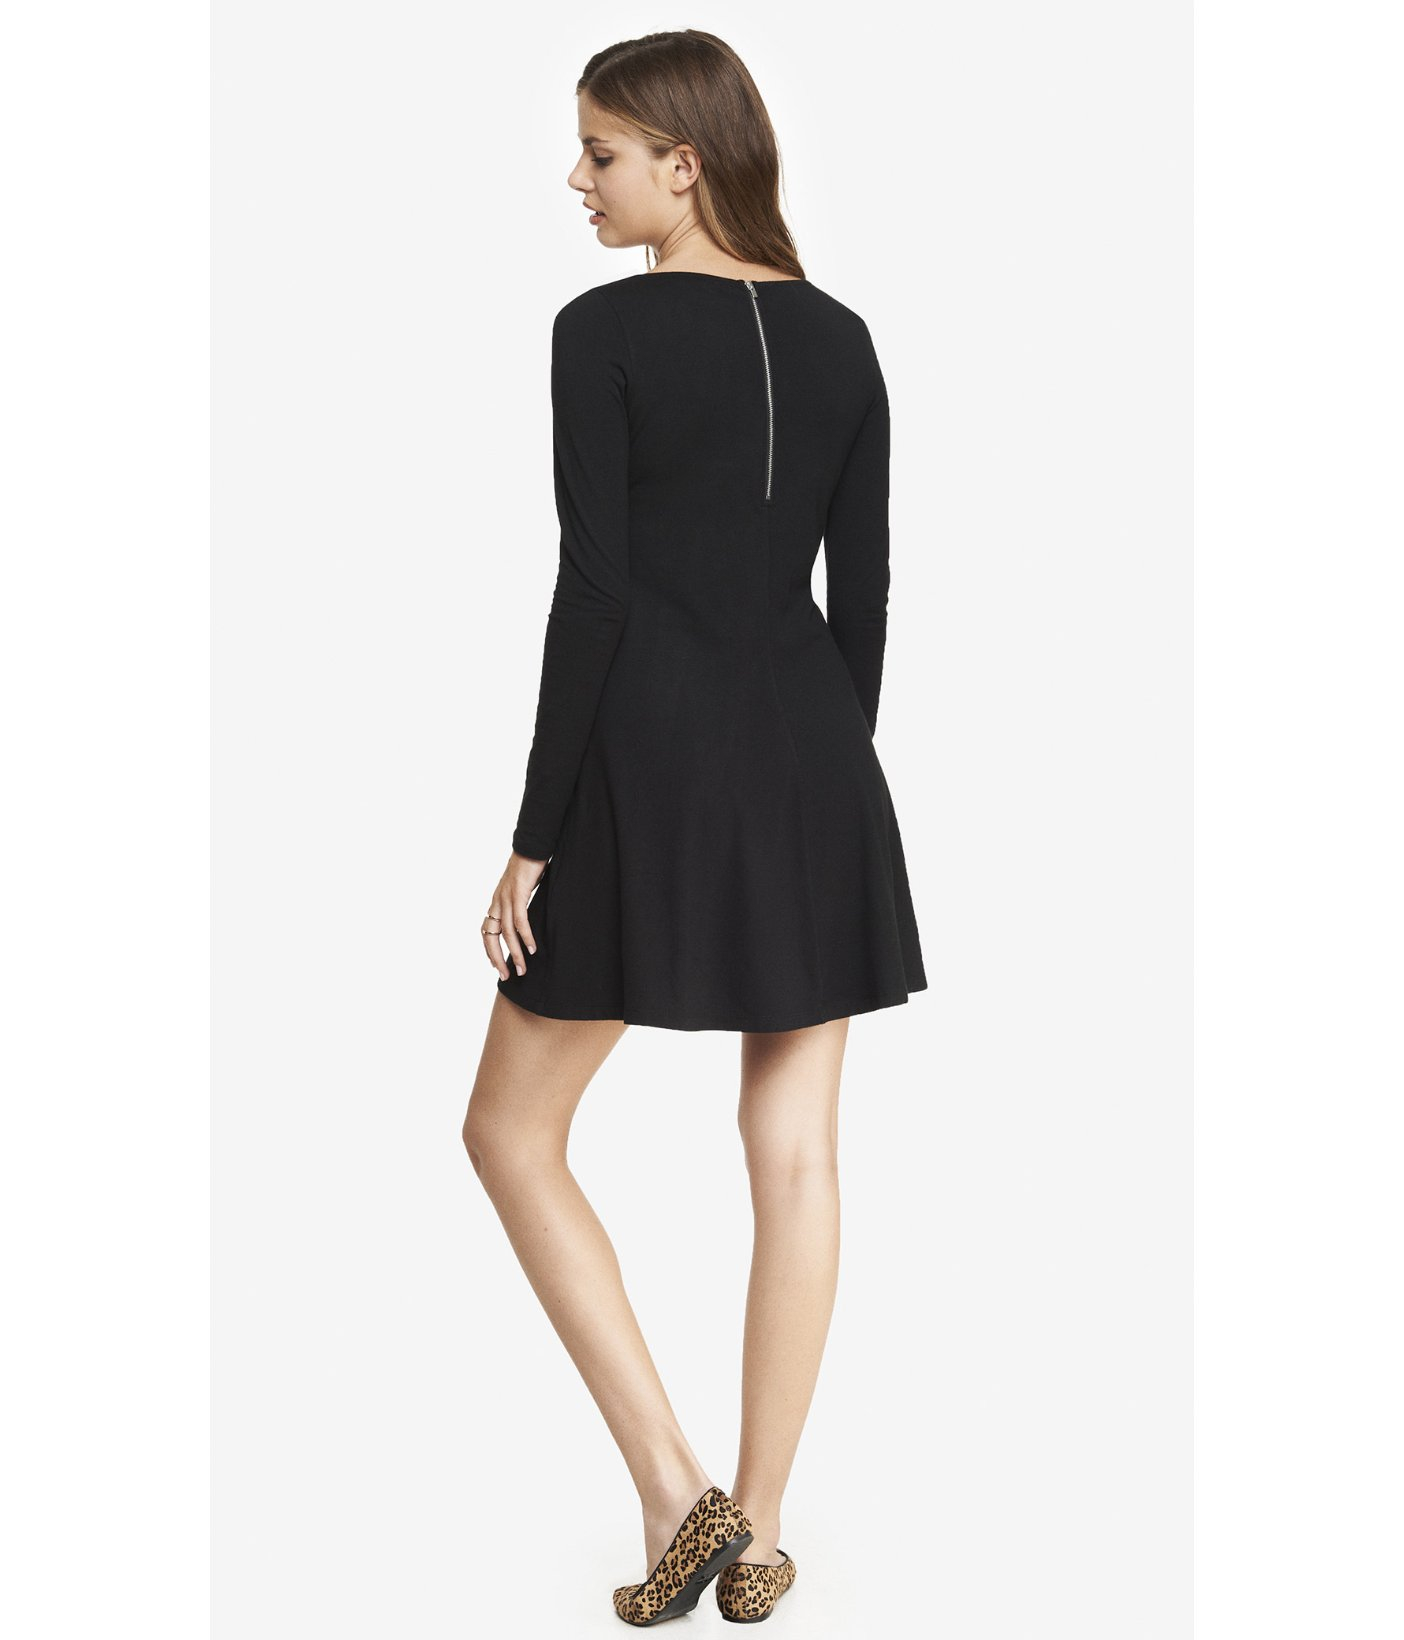 Black Express dress forecast dress in everyday in 2019